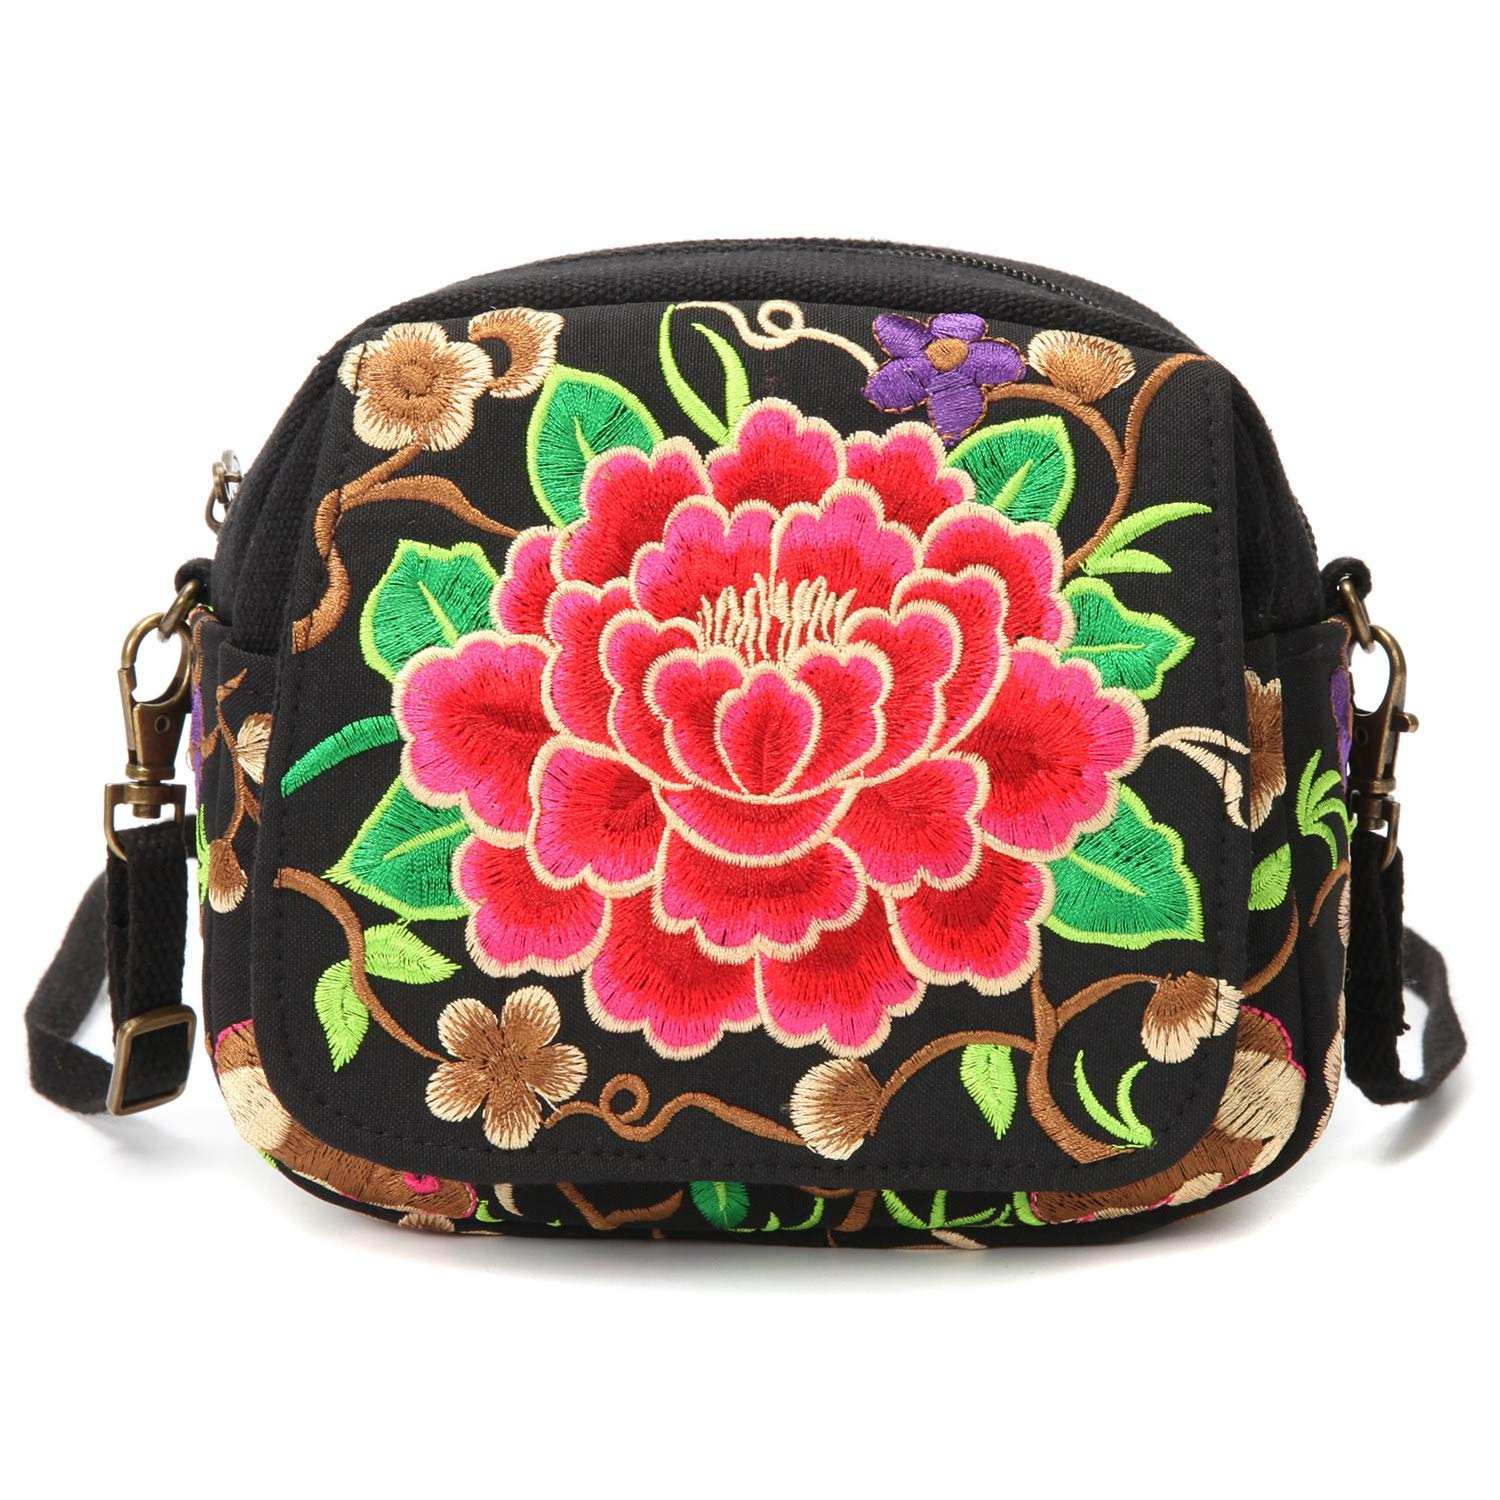 Embroidered Small Crossbody Bag for Women, Cell Phone Purse Wristlet Handbag (Red Rose)